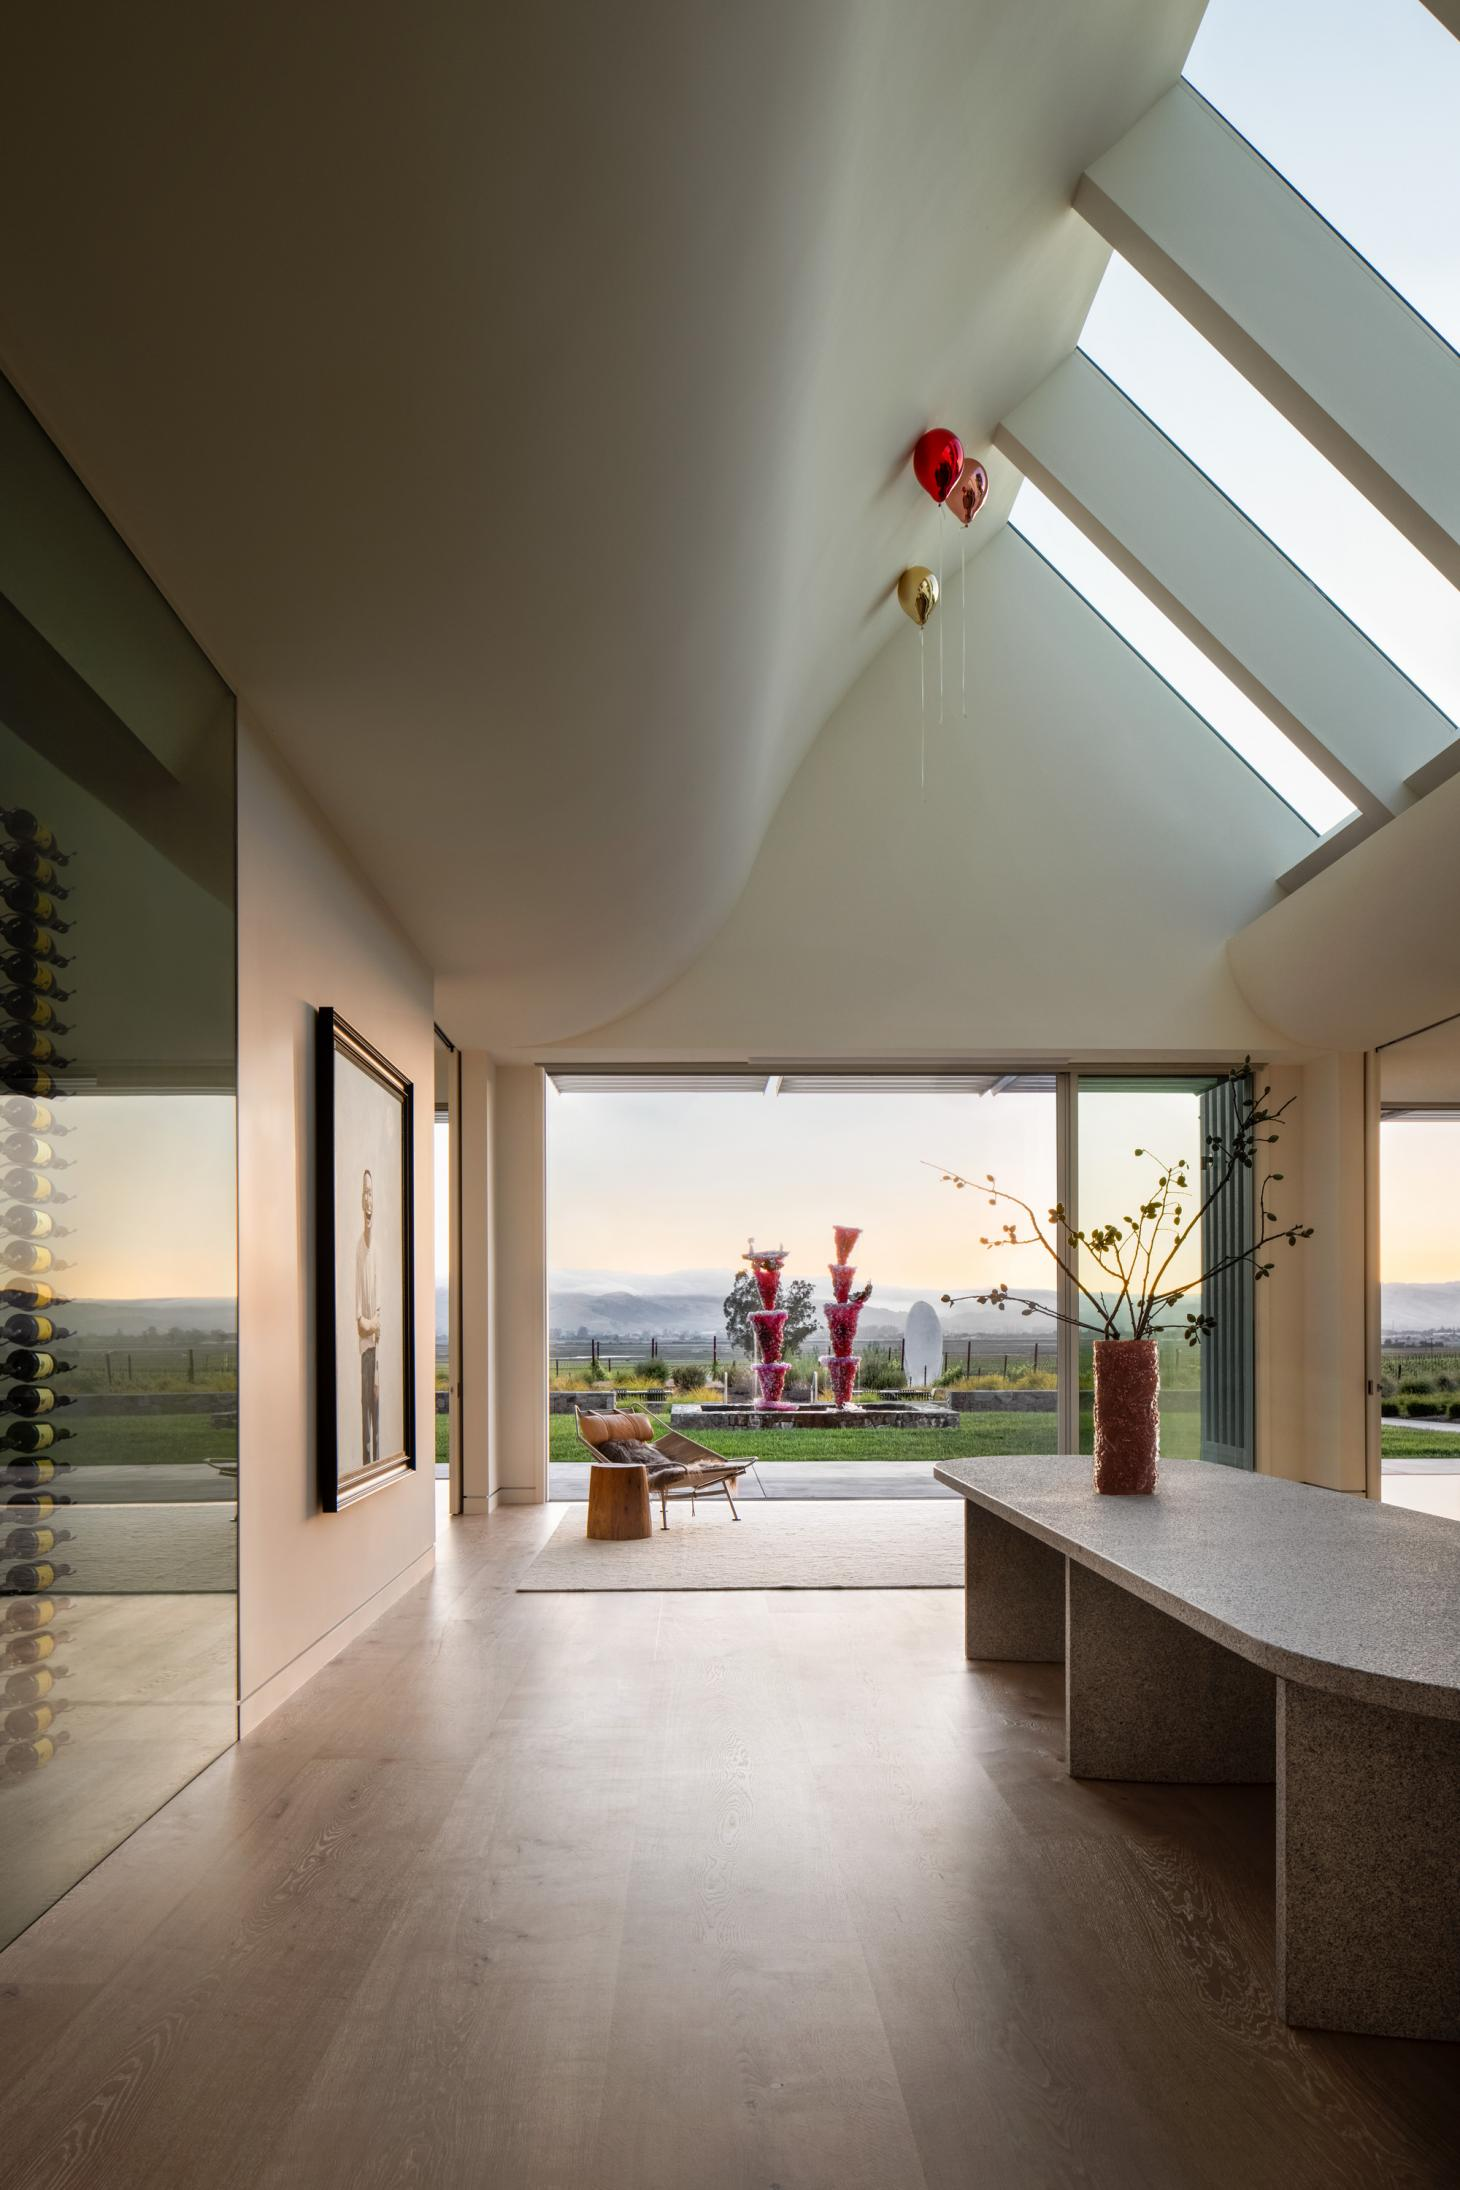 donum estate's donum house by David thulstrup picture featuring tasting rooms with view out to the countryside